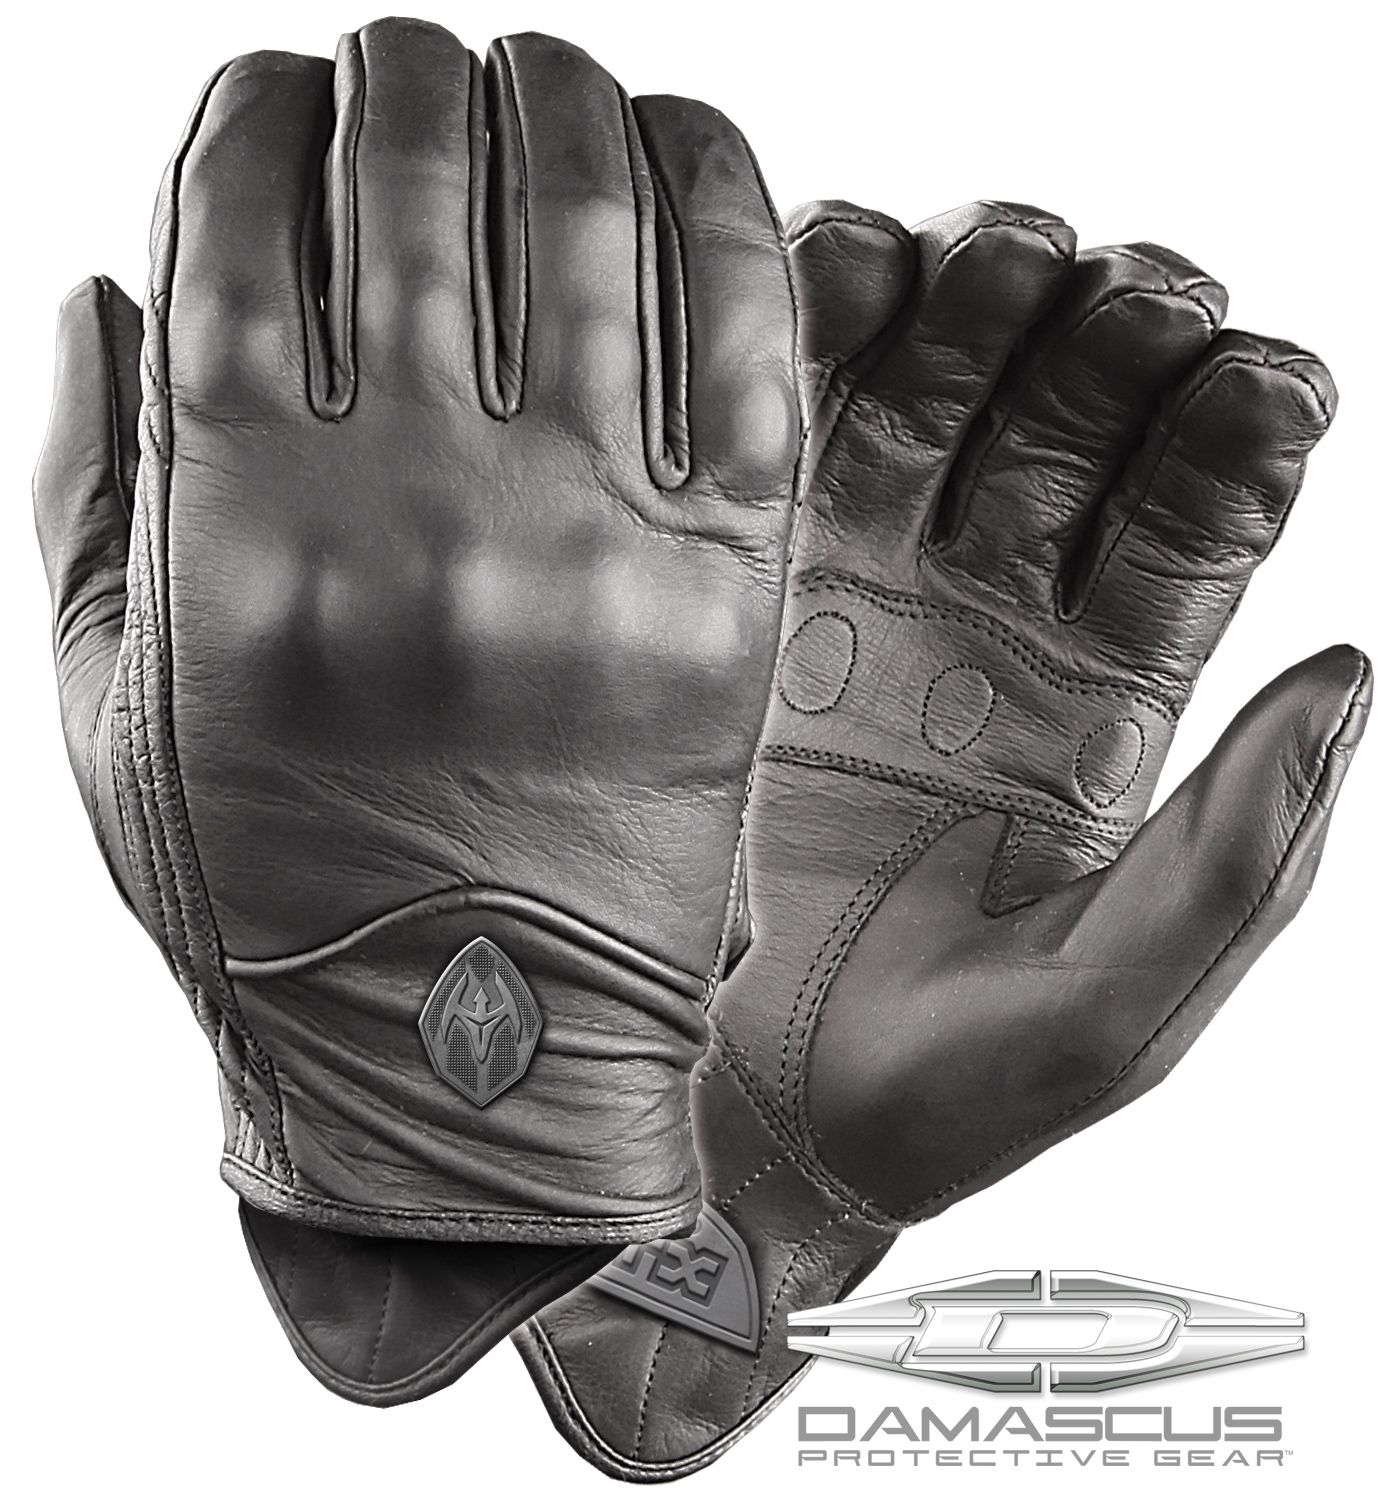 ATX95 AllLeather Gloves with Knuckle ArmorYour finest